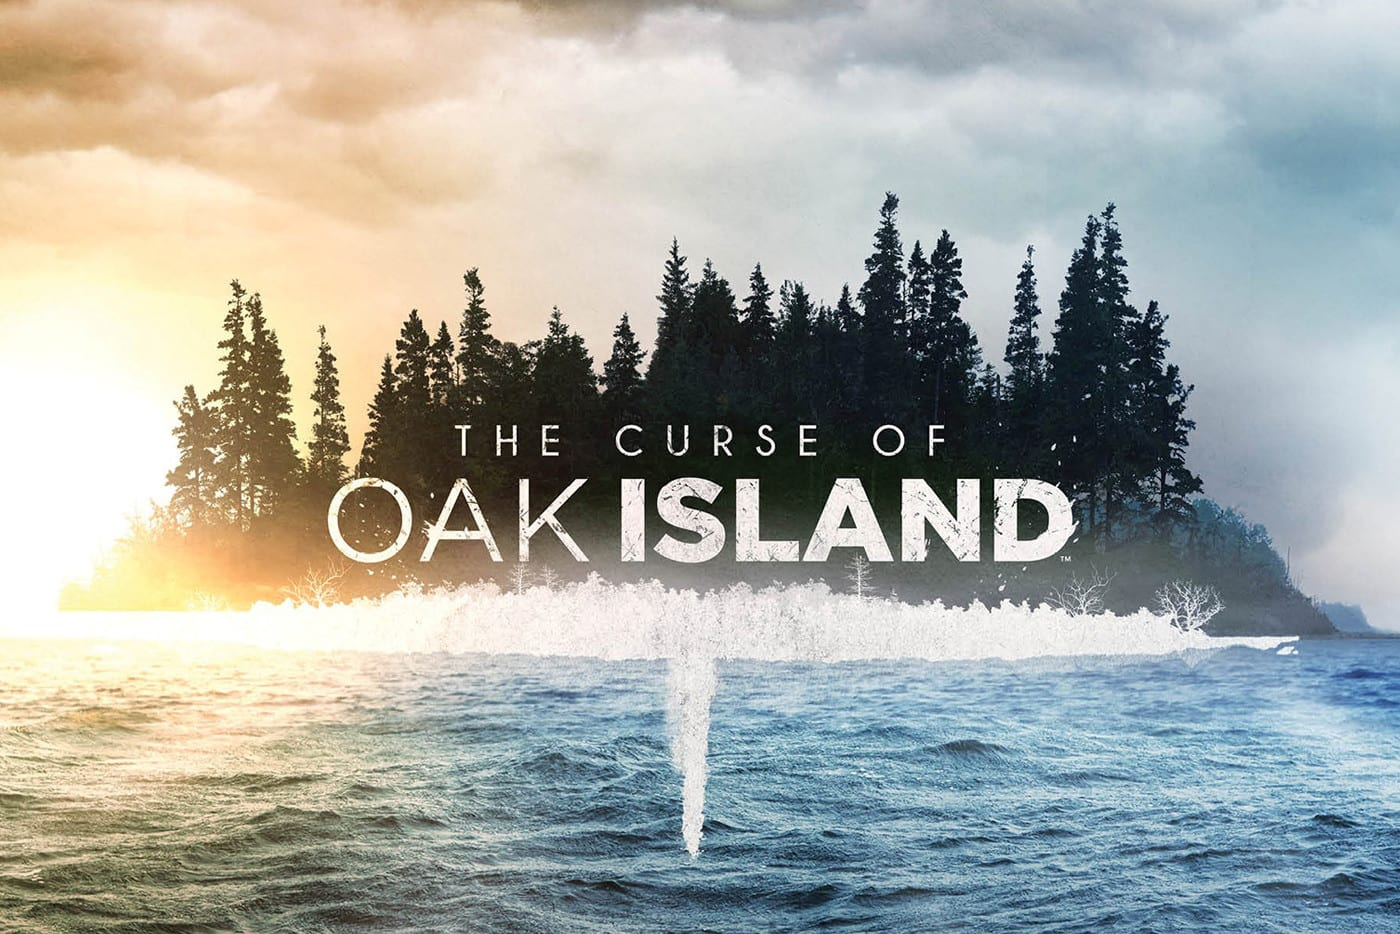 The Curse of Oak Island' Season 7